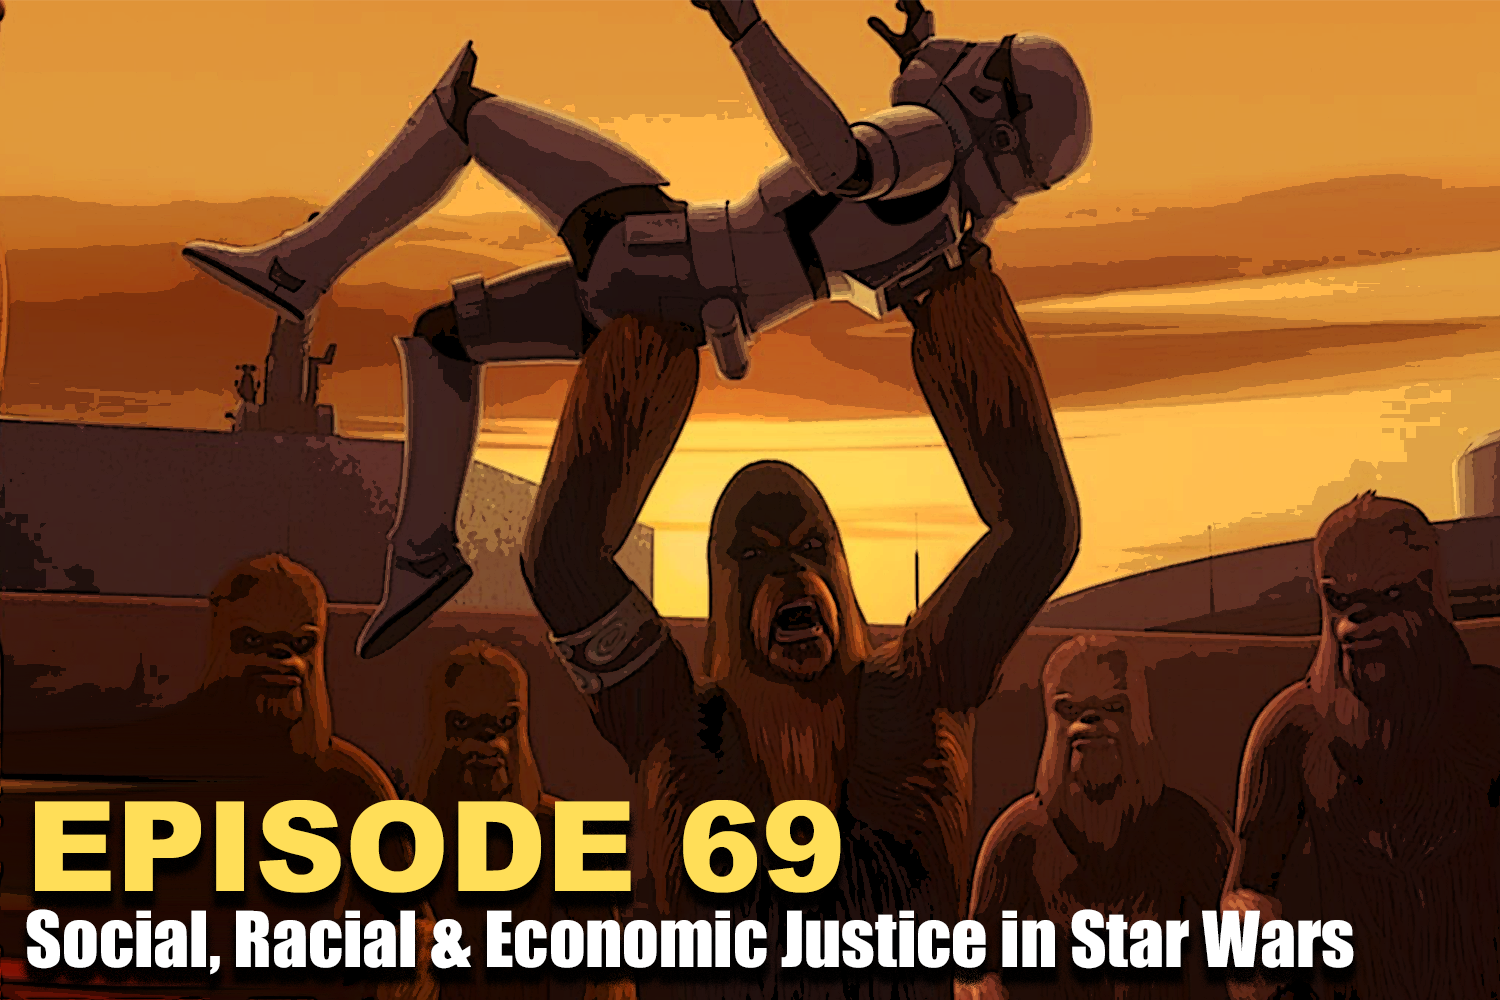 Beltway Banthas #69: Racial, social and economic justice in Star Wars